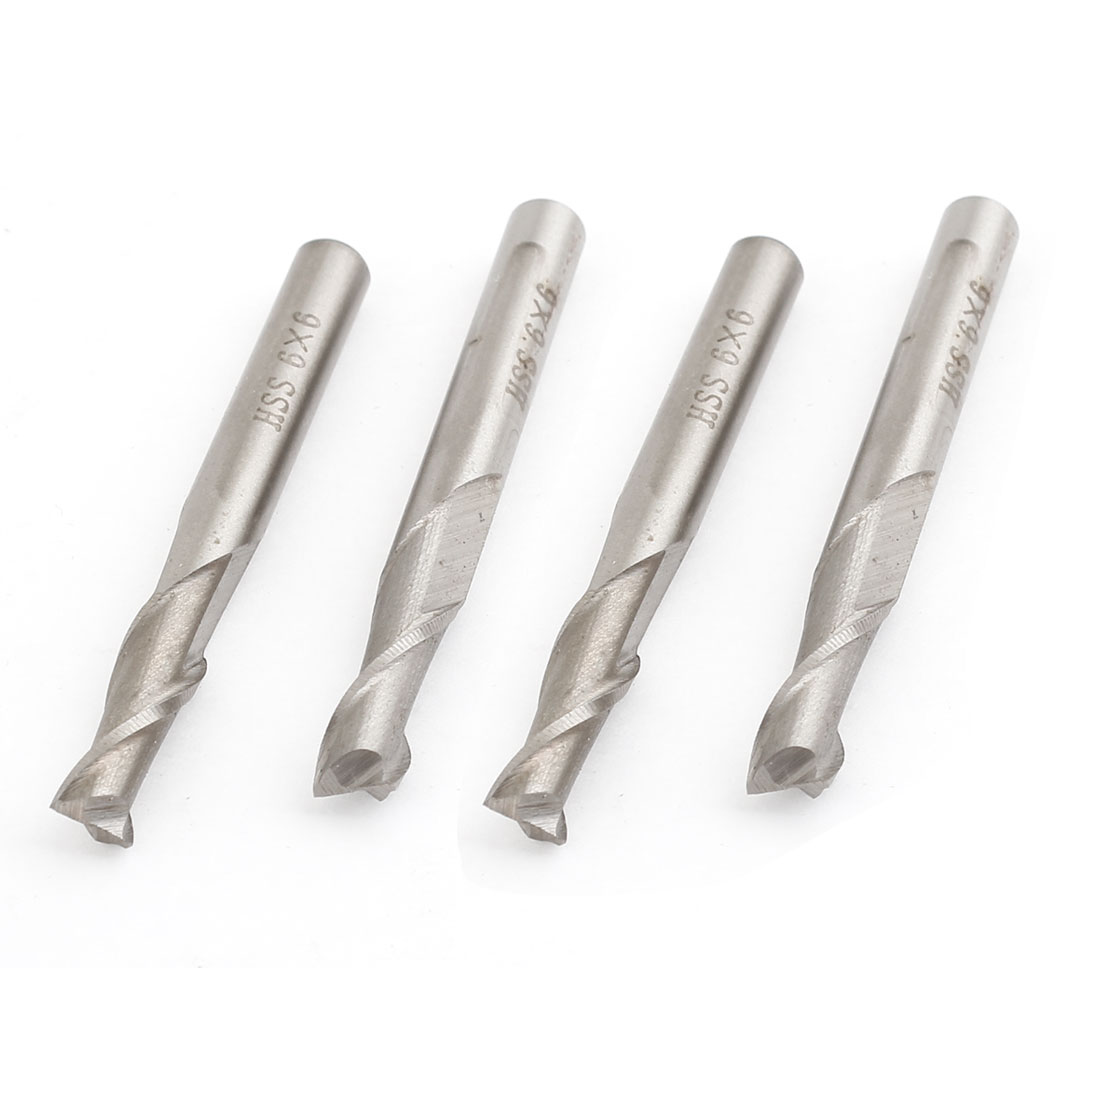 4pcs 58mm Length 2 Flutes Straight Shank HSS End Mill Milling Tool 6mm x 6mm